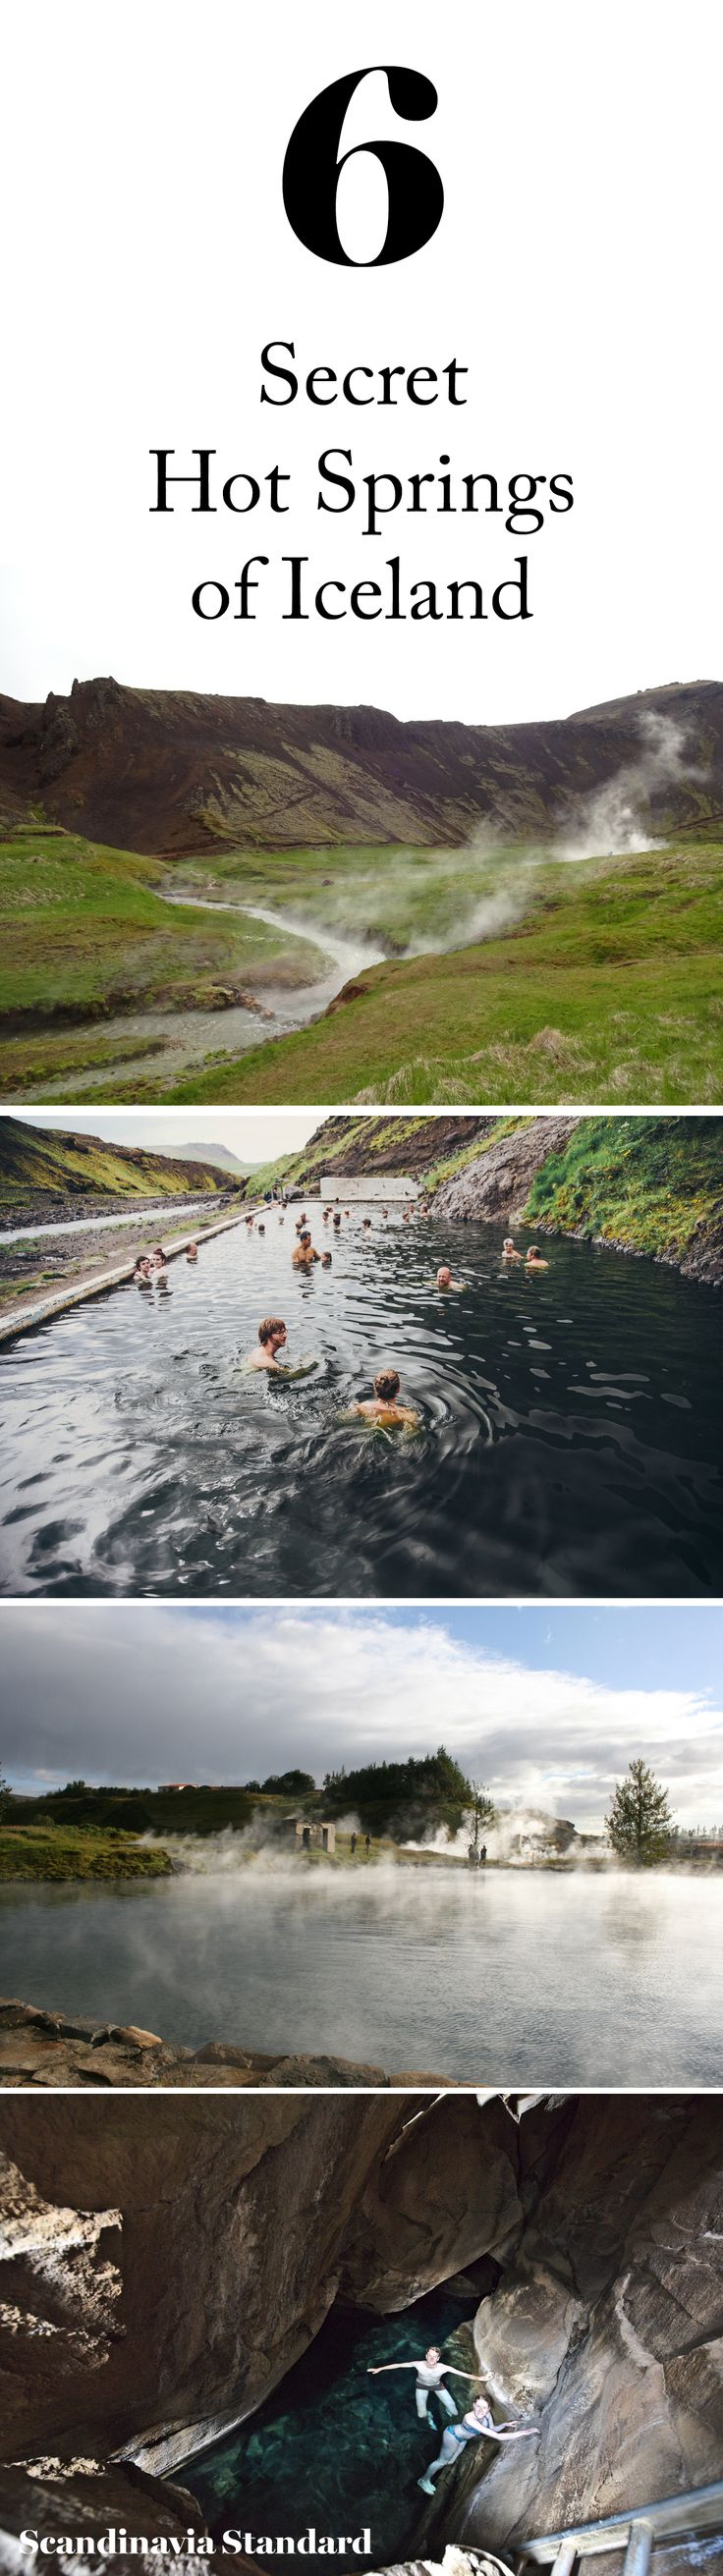 Six lesser-known hot springs in Iceland for you to luxuriate in on your next adventure, coordinates included! ...repinned für Gewinner! - jetzt gratis Erfolgsratgeber sichern www.ratsucher.de